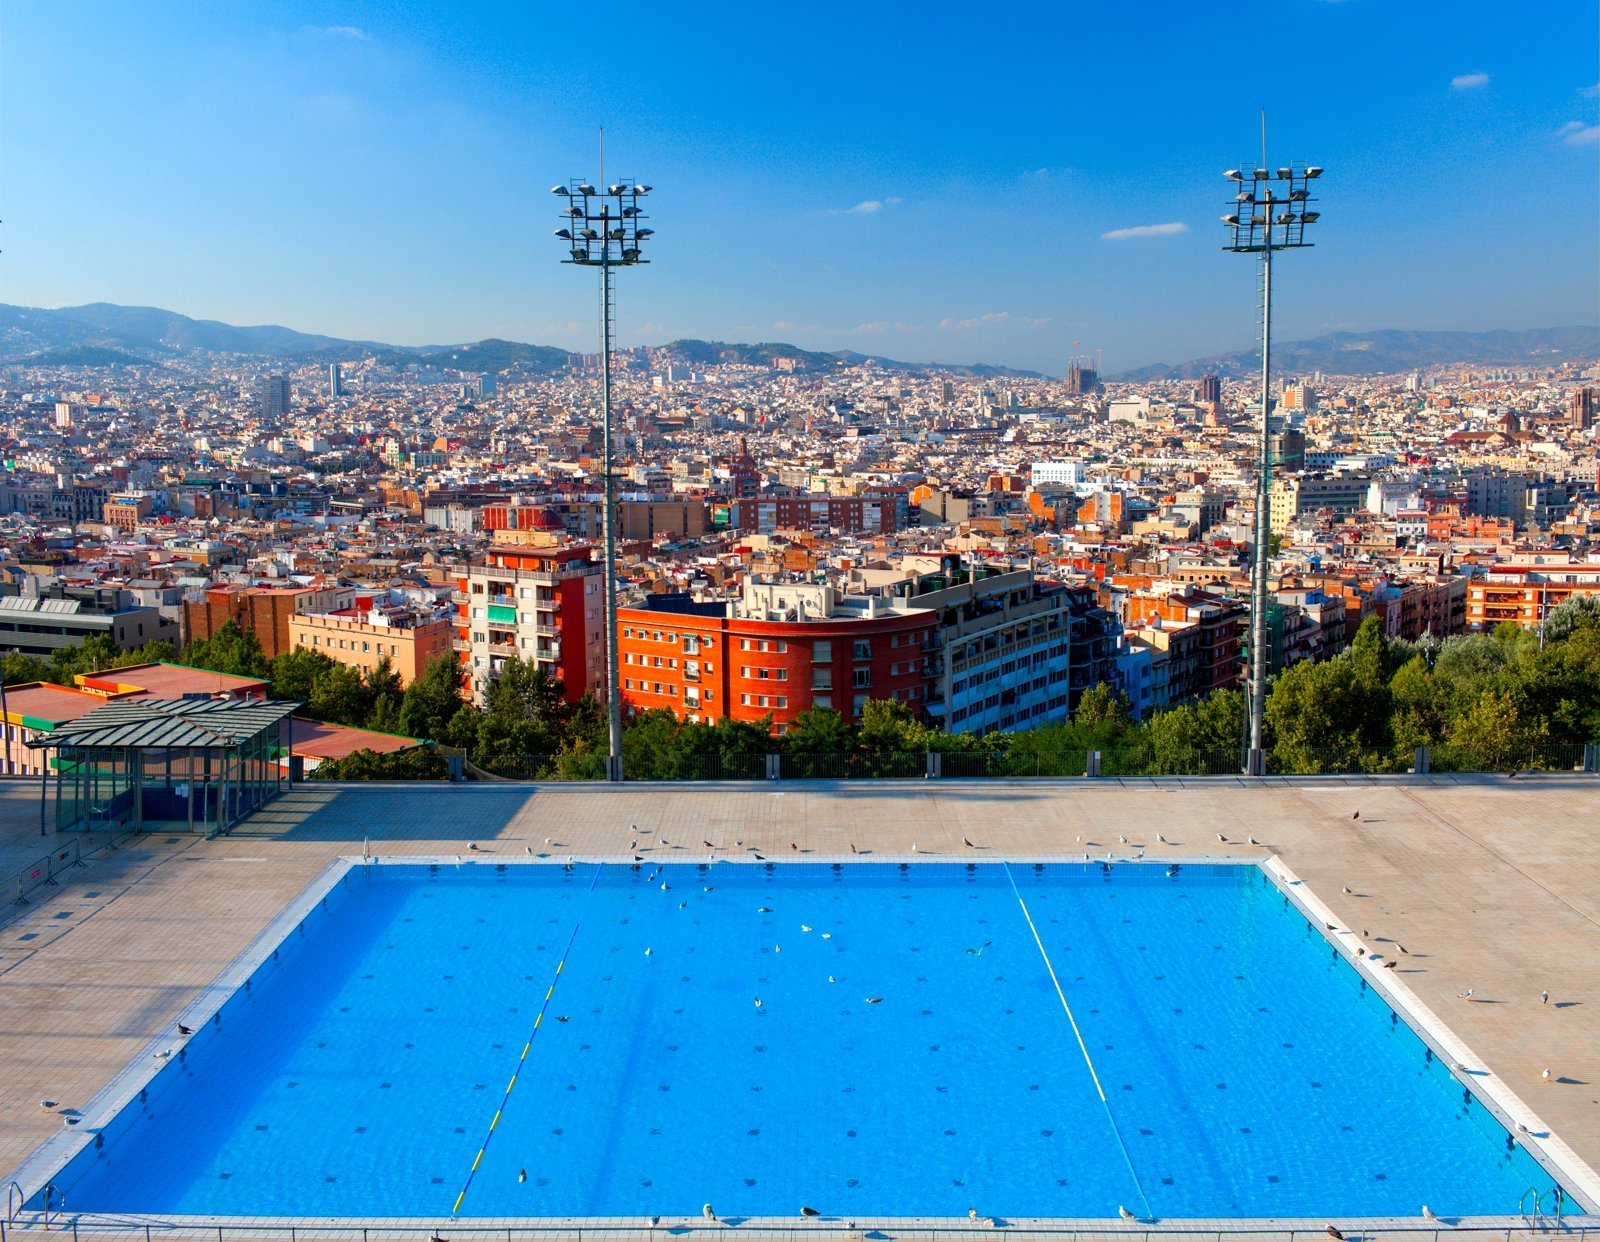 How to take a swim in the pool with views of the city in Barcelona